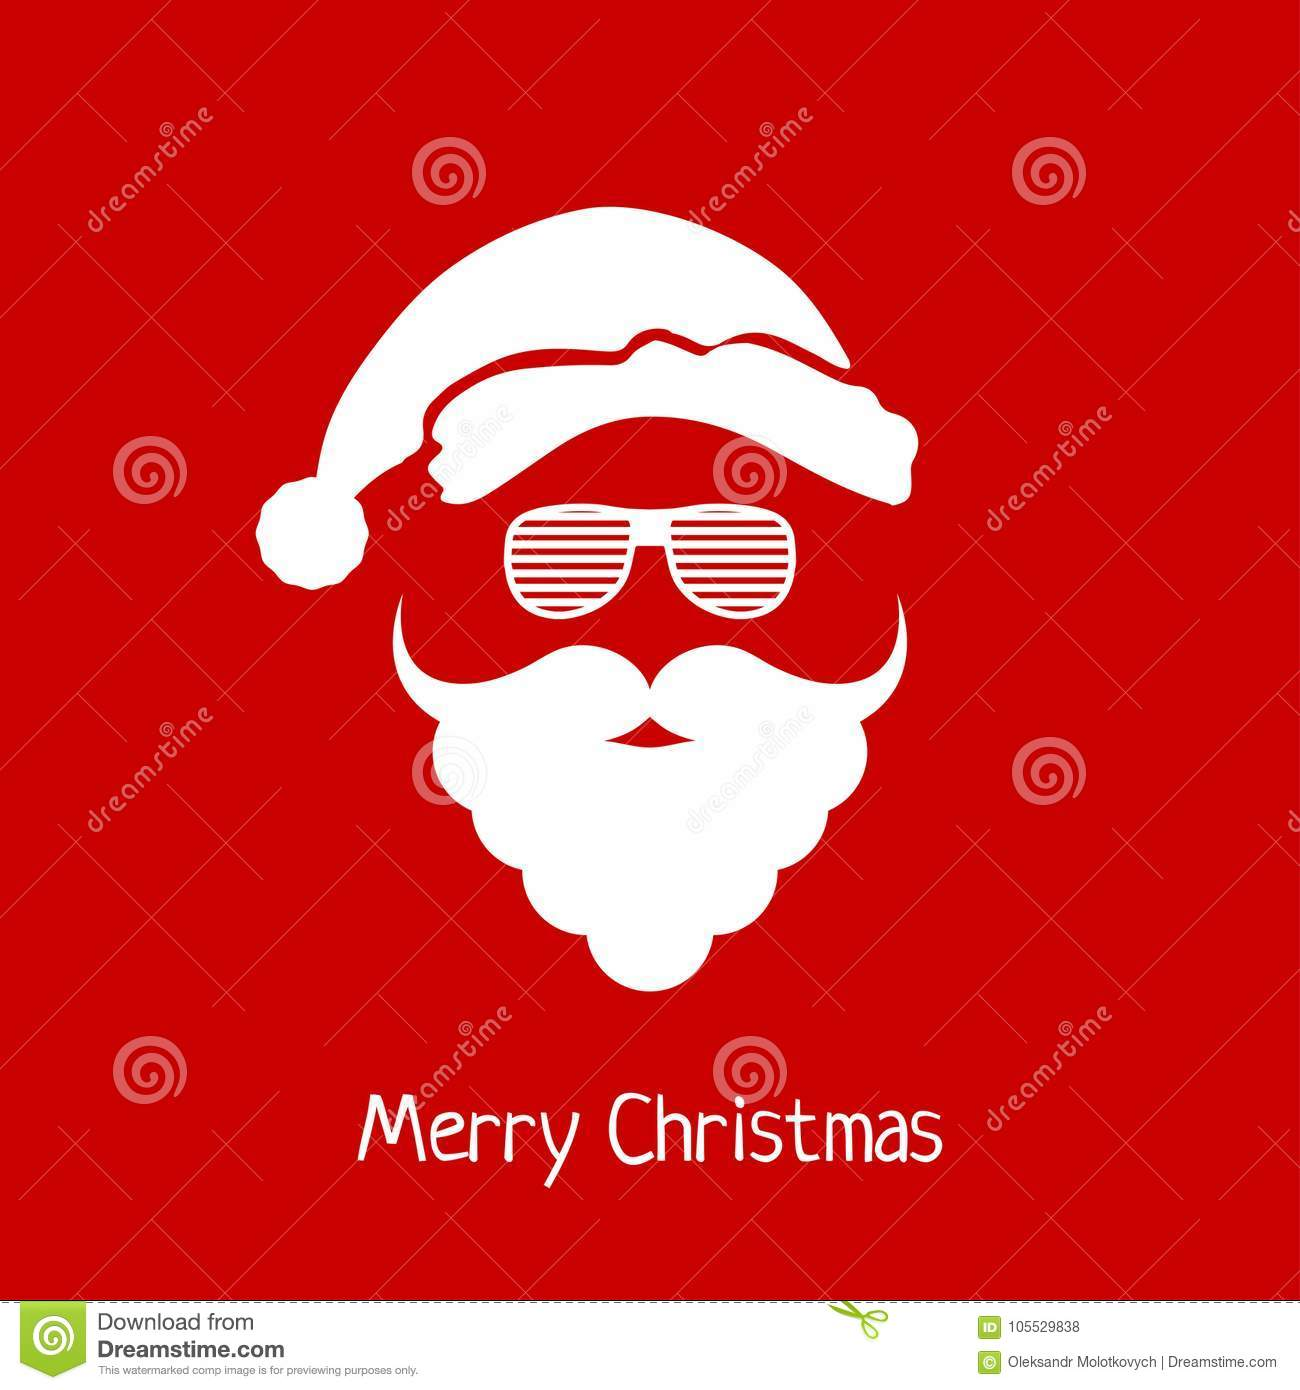 ec4bb8a46a76a4 Vector Santa Claus Head With Hat, Beard And Hipster Glasses. Stock ...